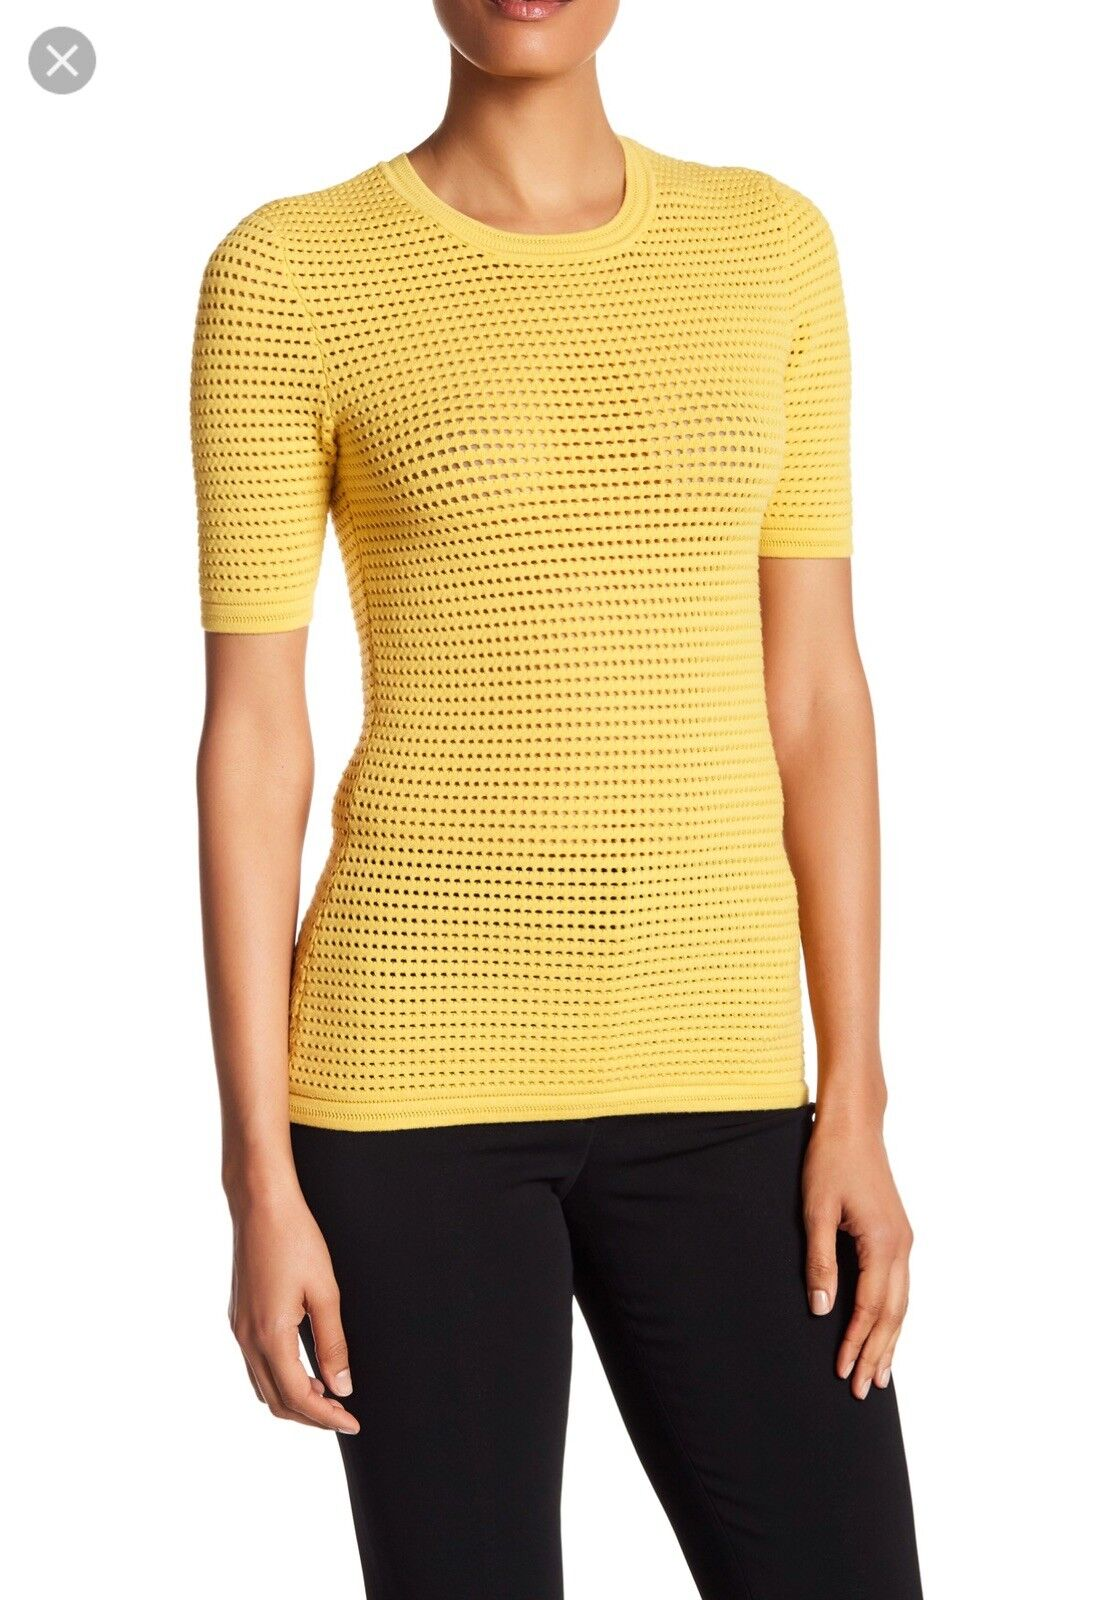 NWT Yigal azroule Waffle Knit Top